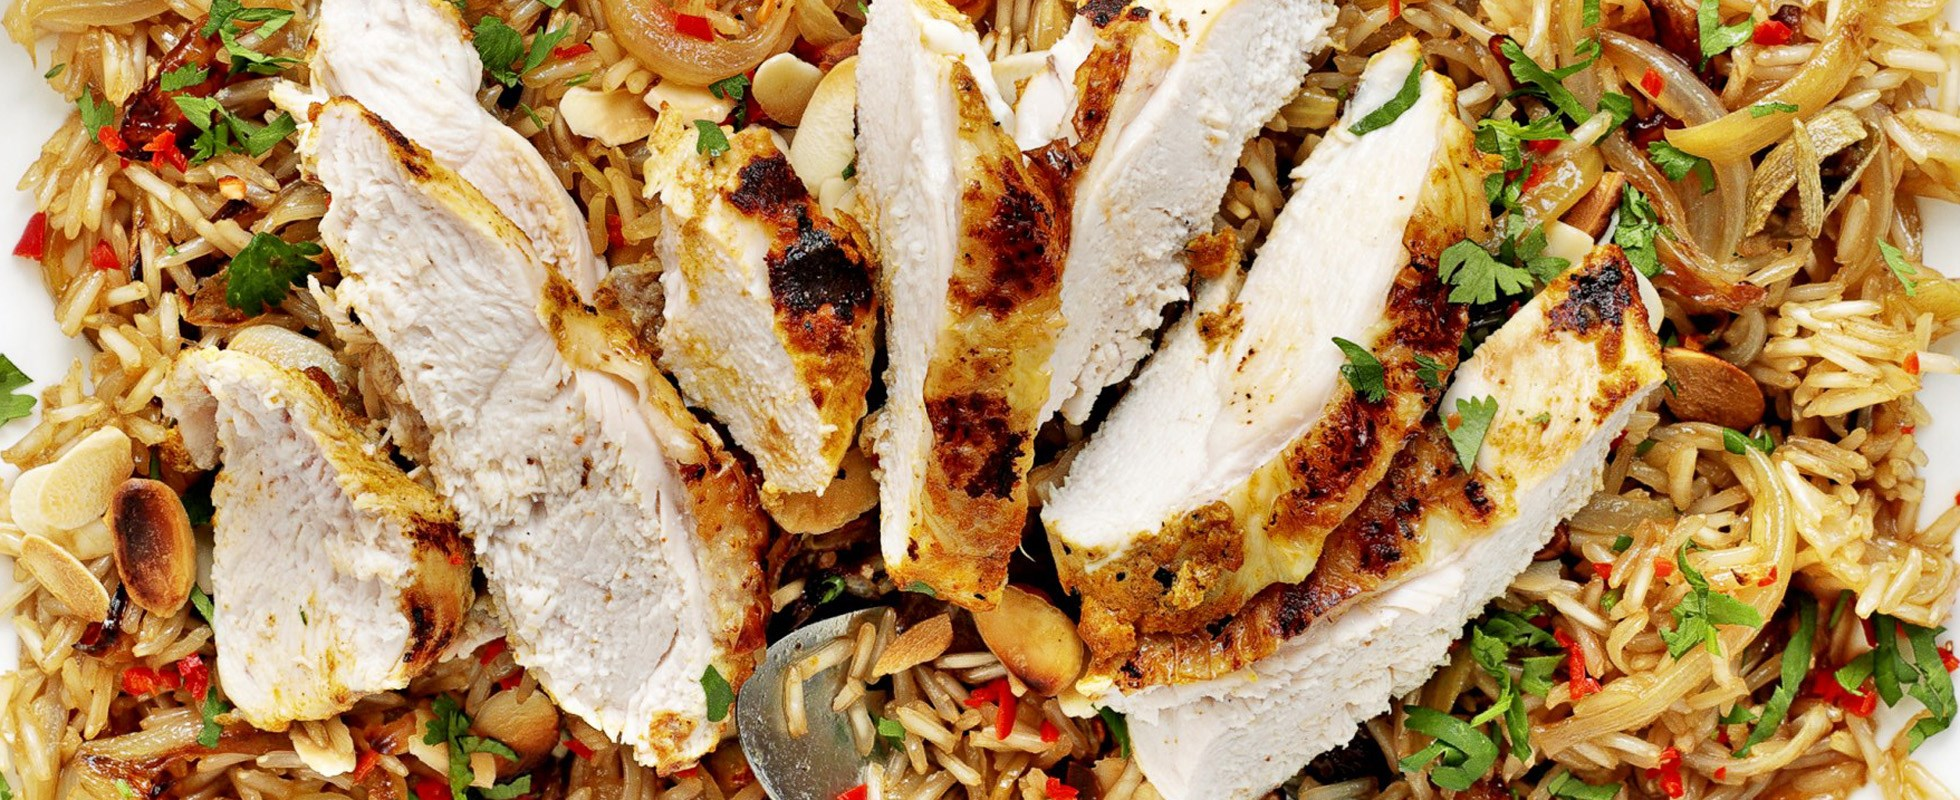 Yoghurt-spiced chicken with almond and coriander rice